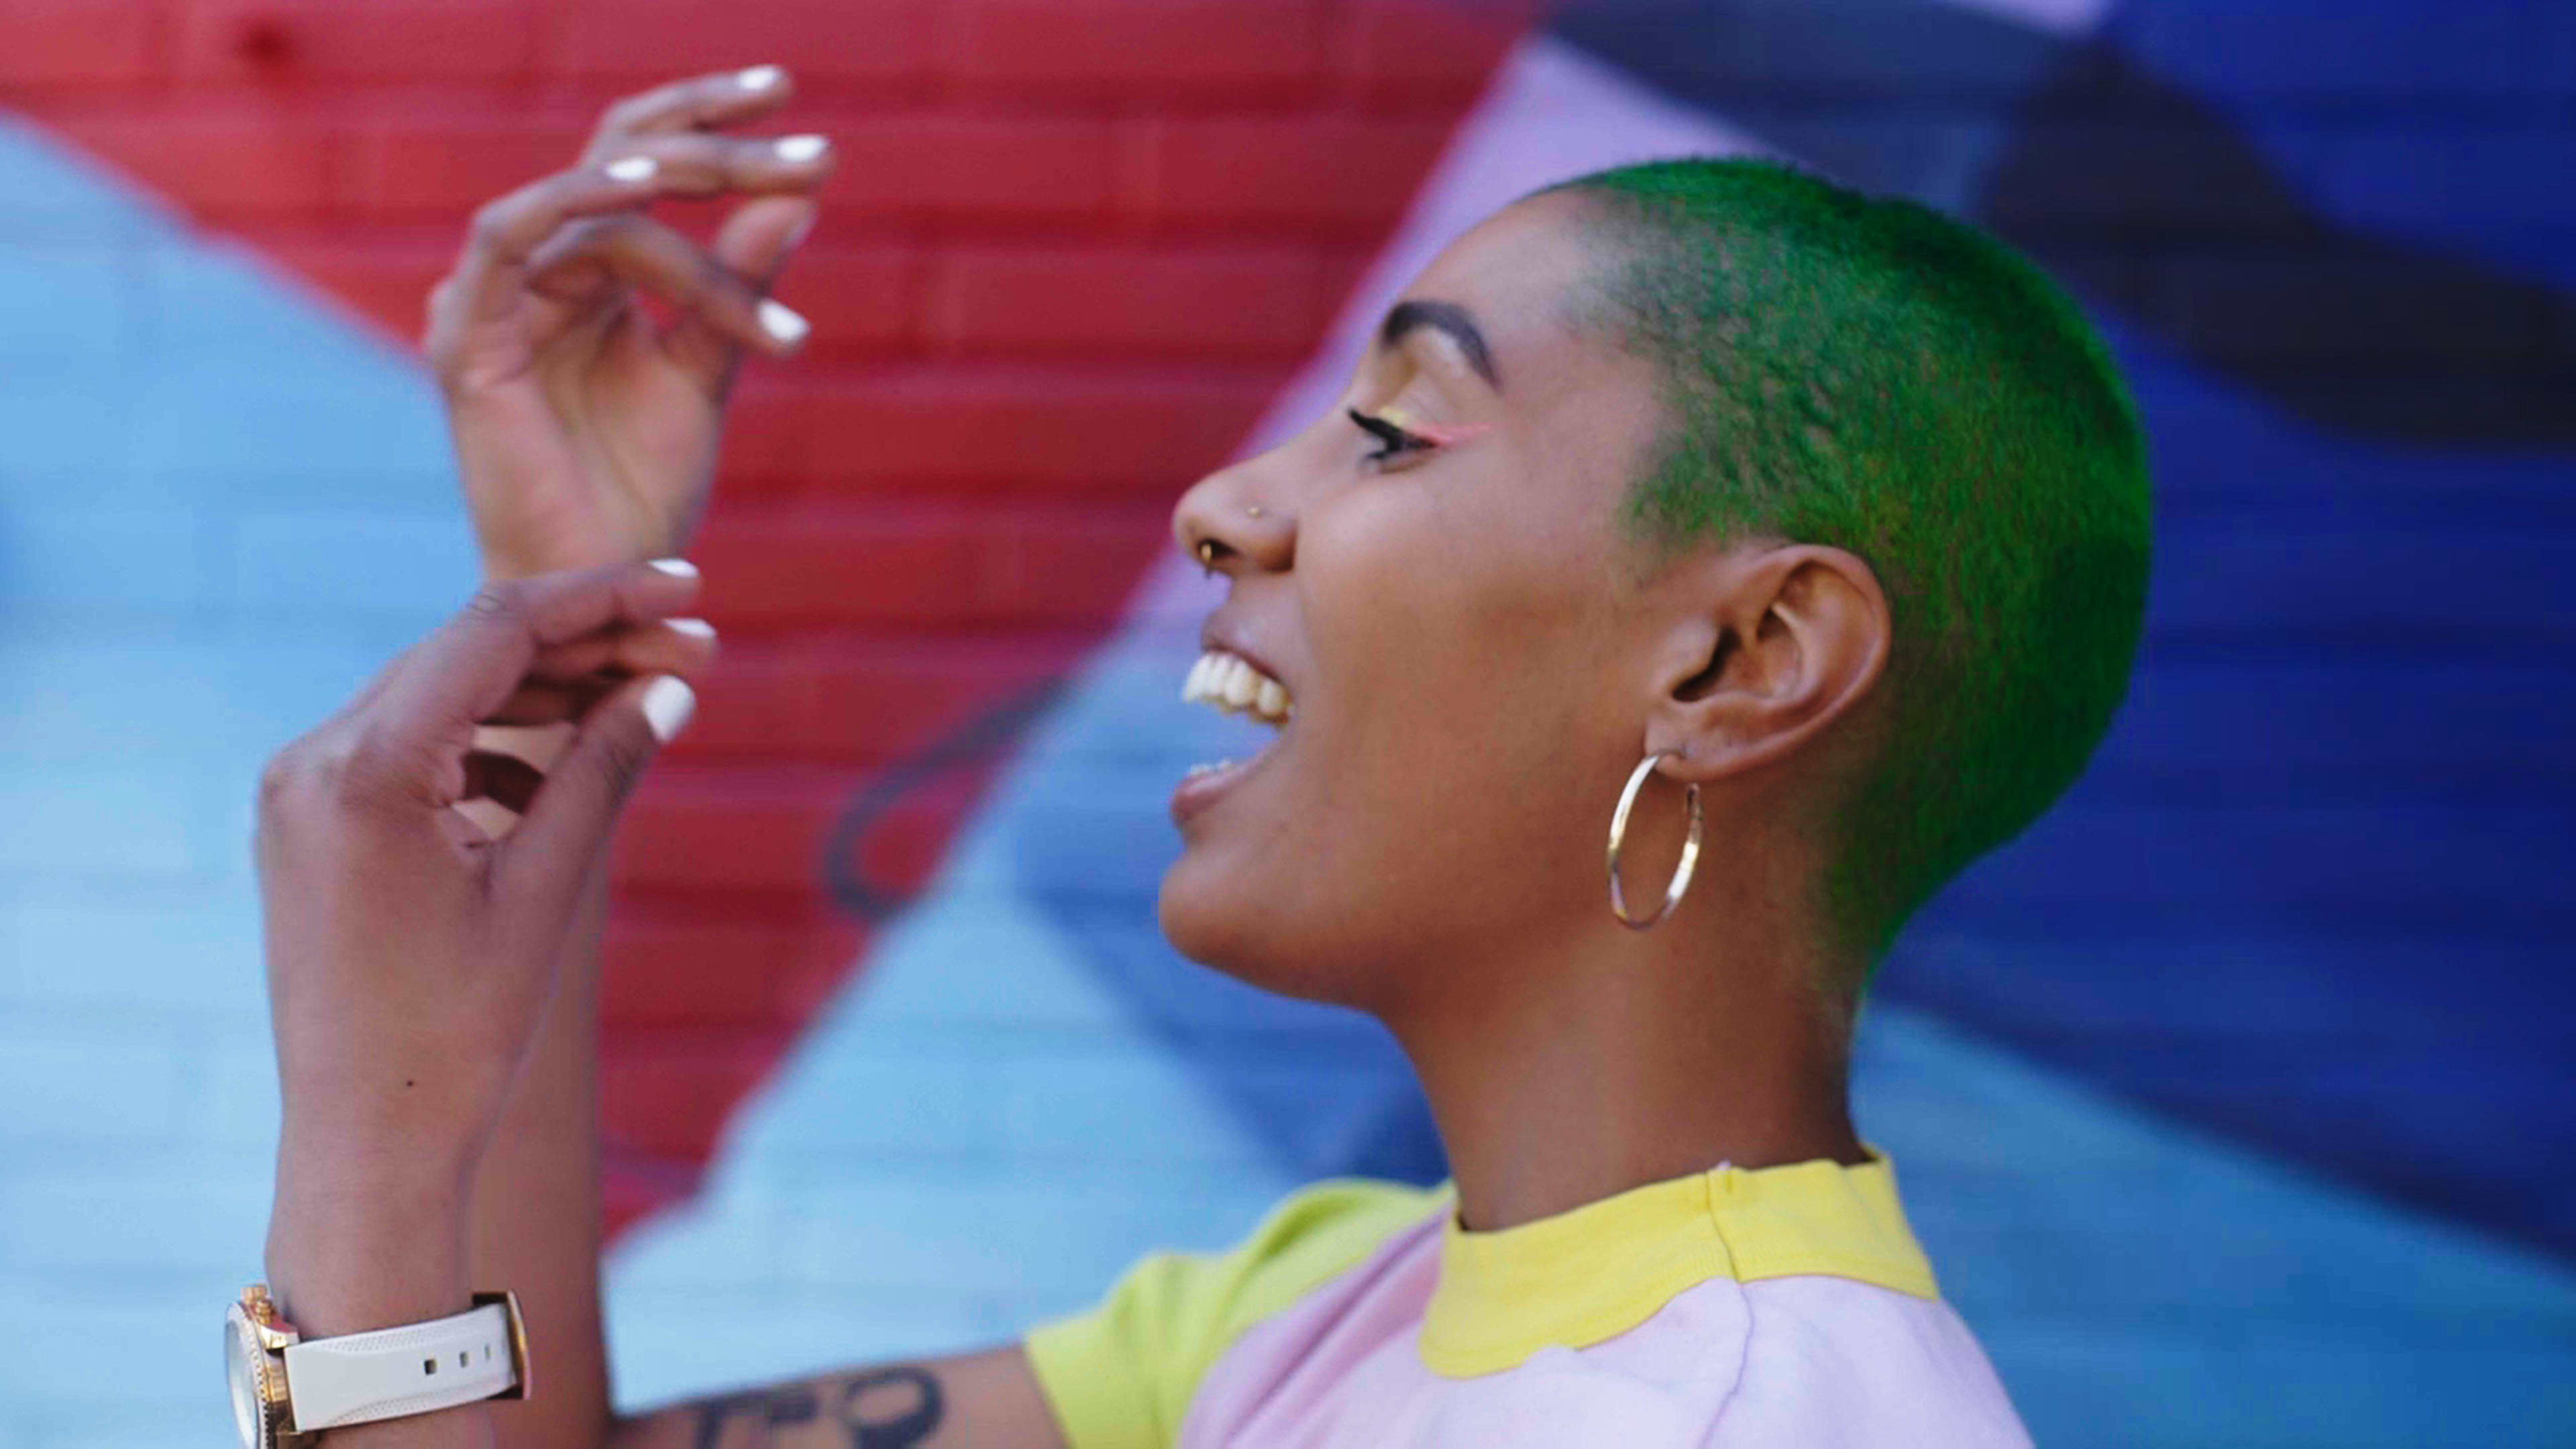 A TikTok tune is becoming Sally Beauty's new anthem as it embraces vivid hair color to fuel growth